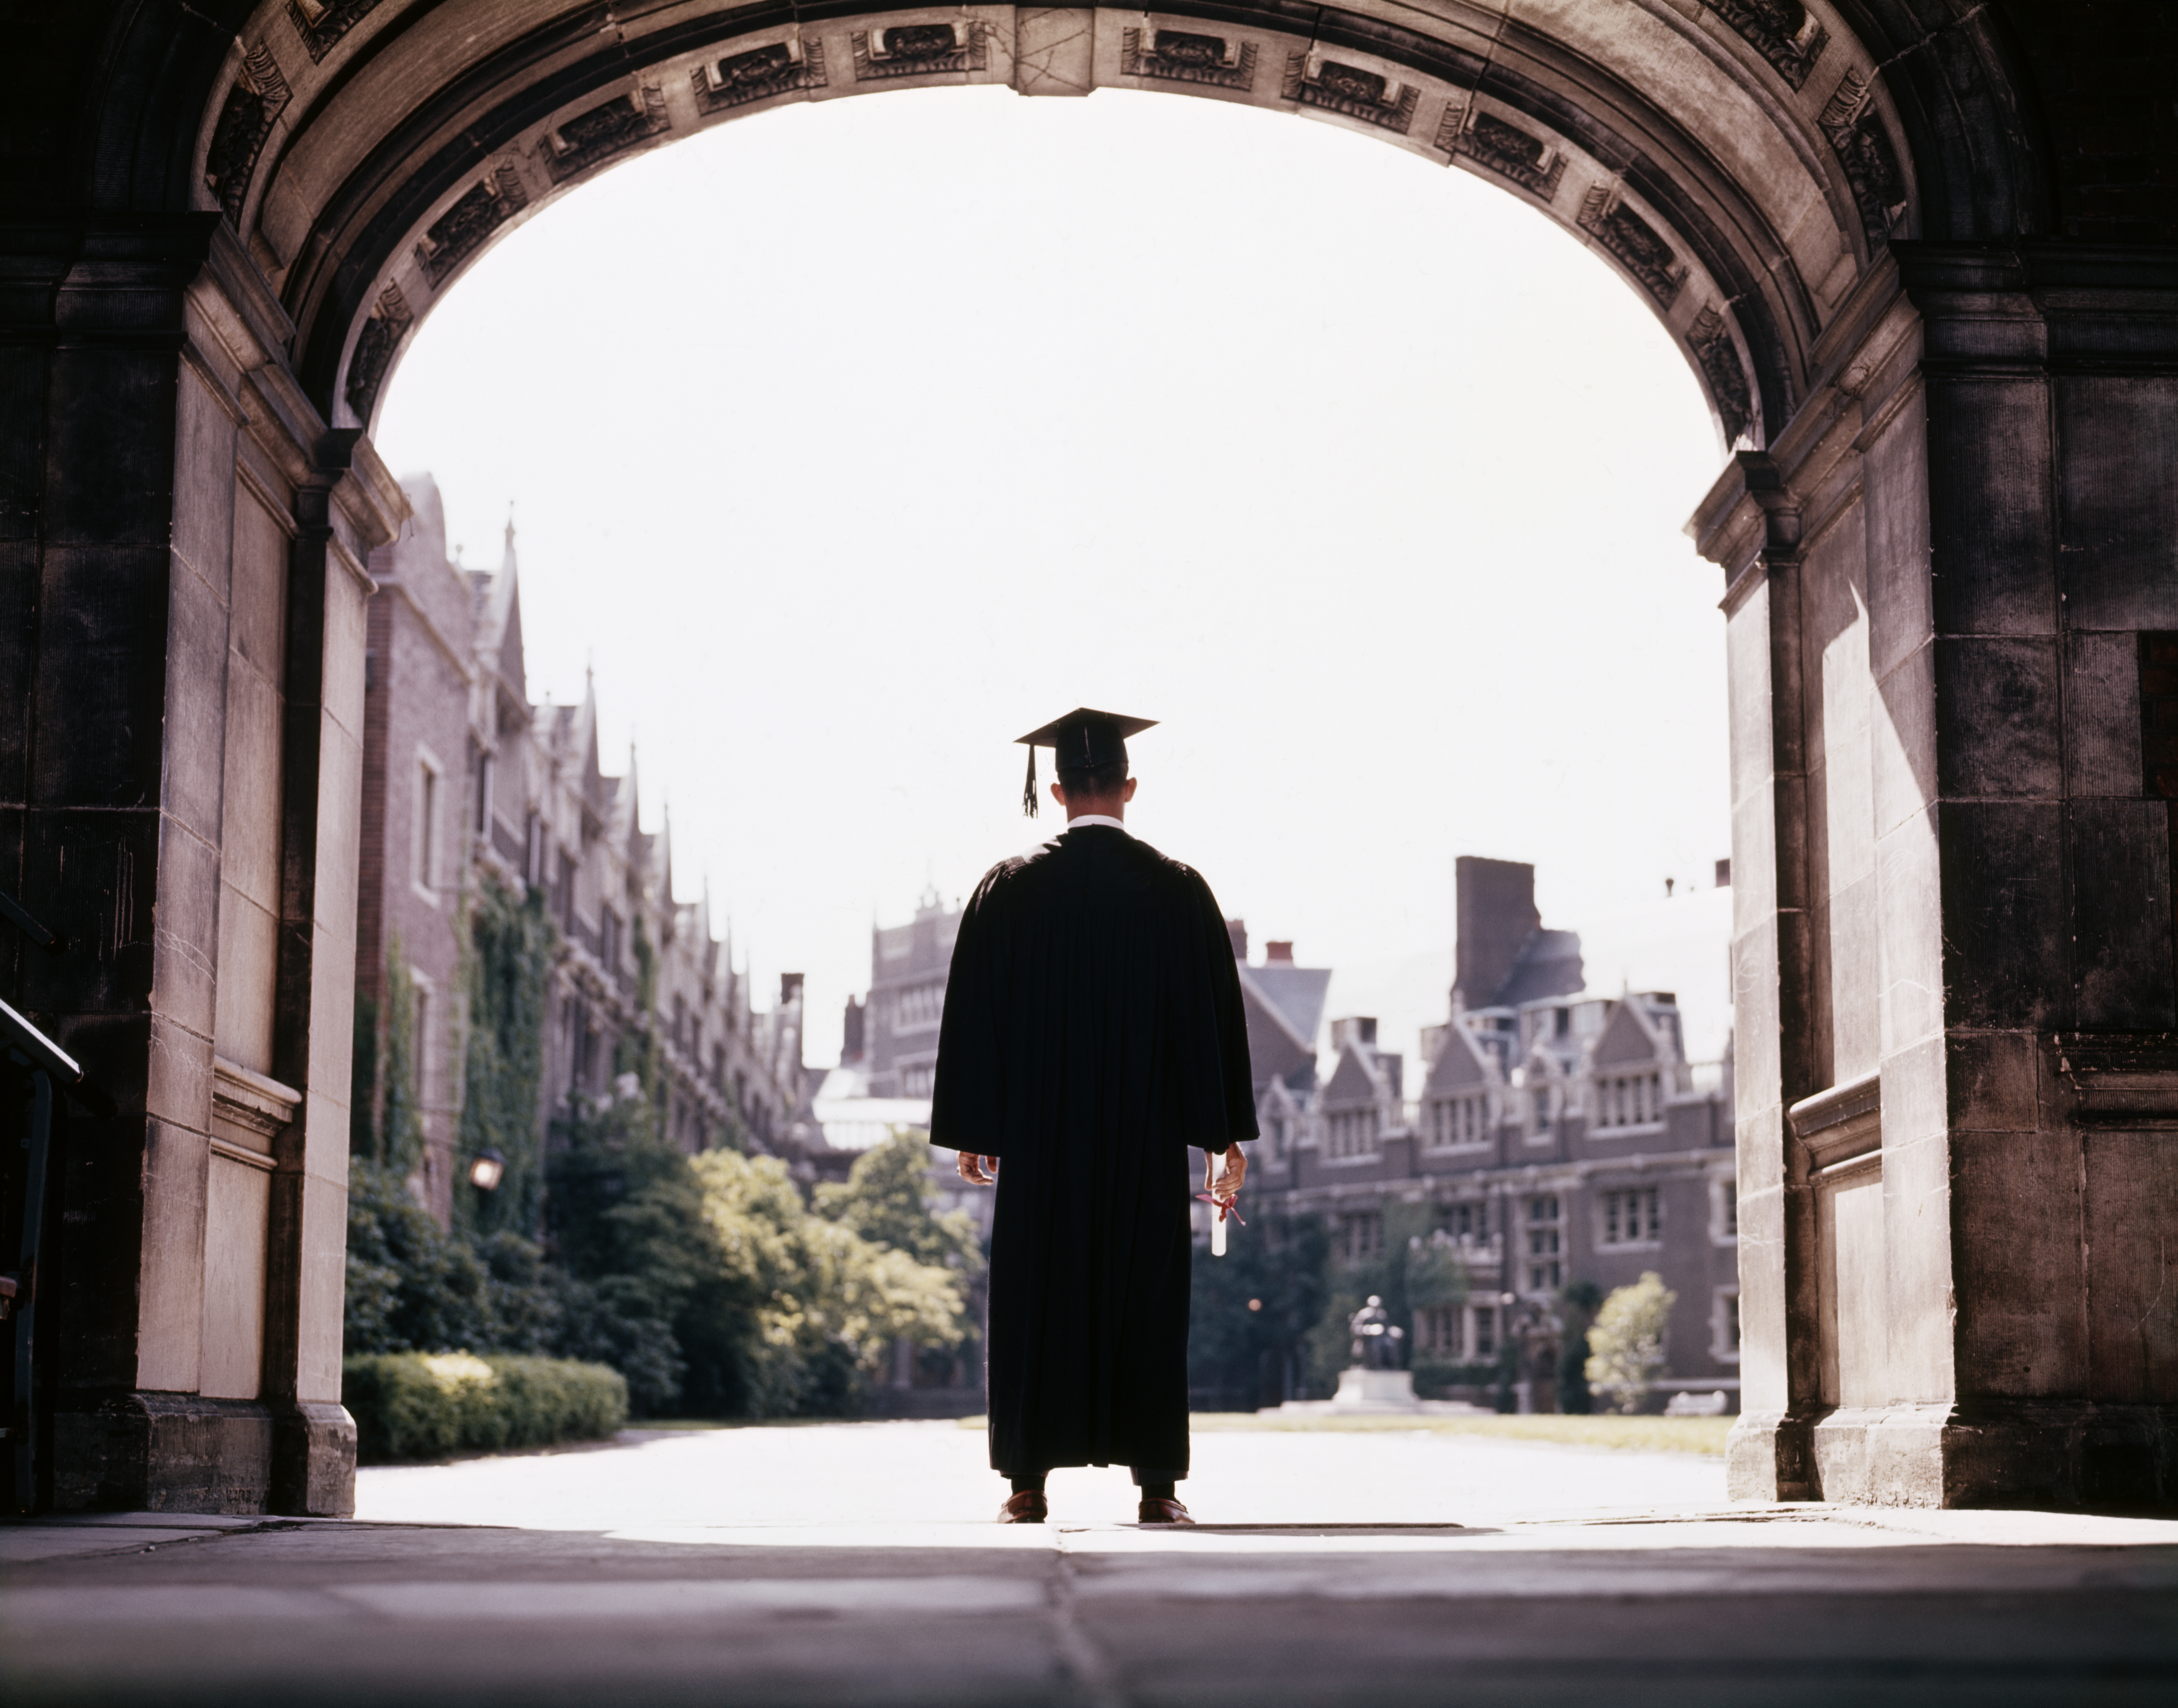 Male graduate wearing cap and gown standing in campus archway at University of Pennsylvania.